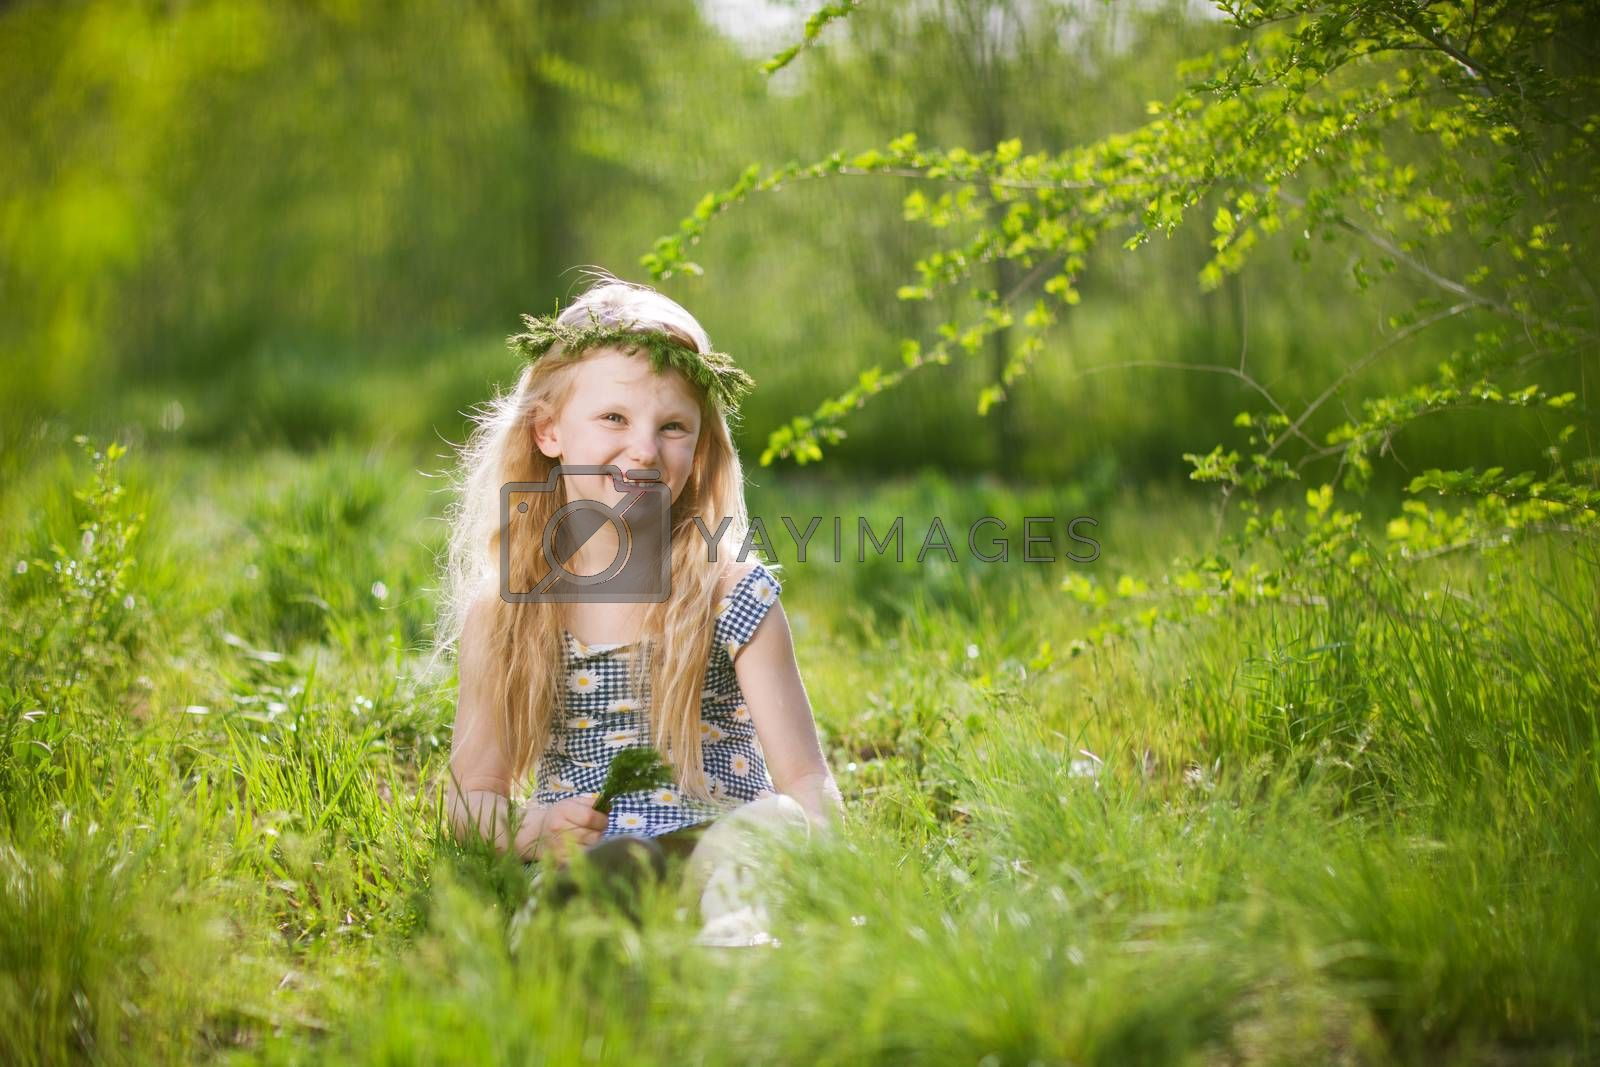 girl in the park at spring